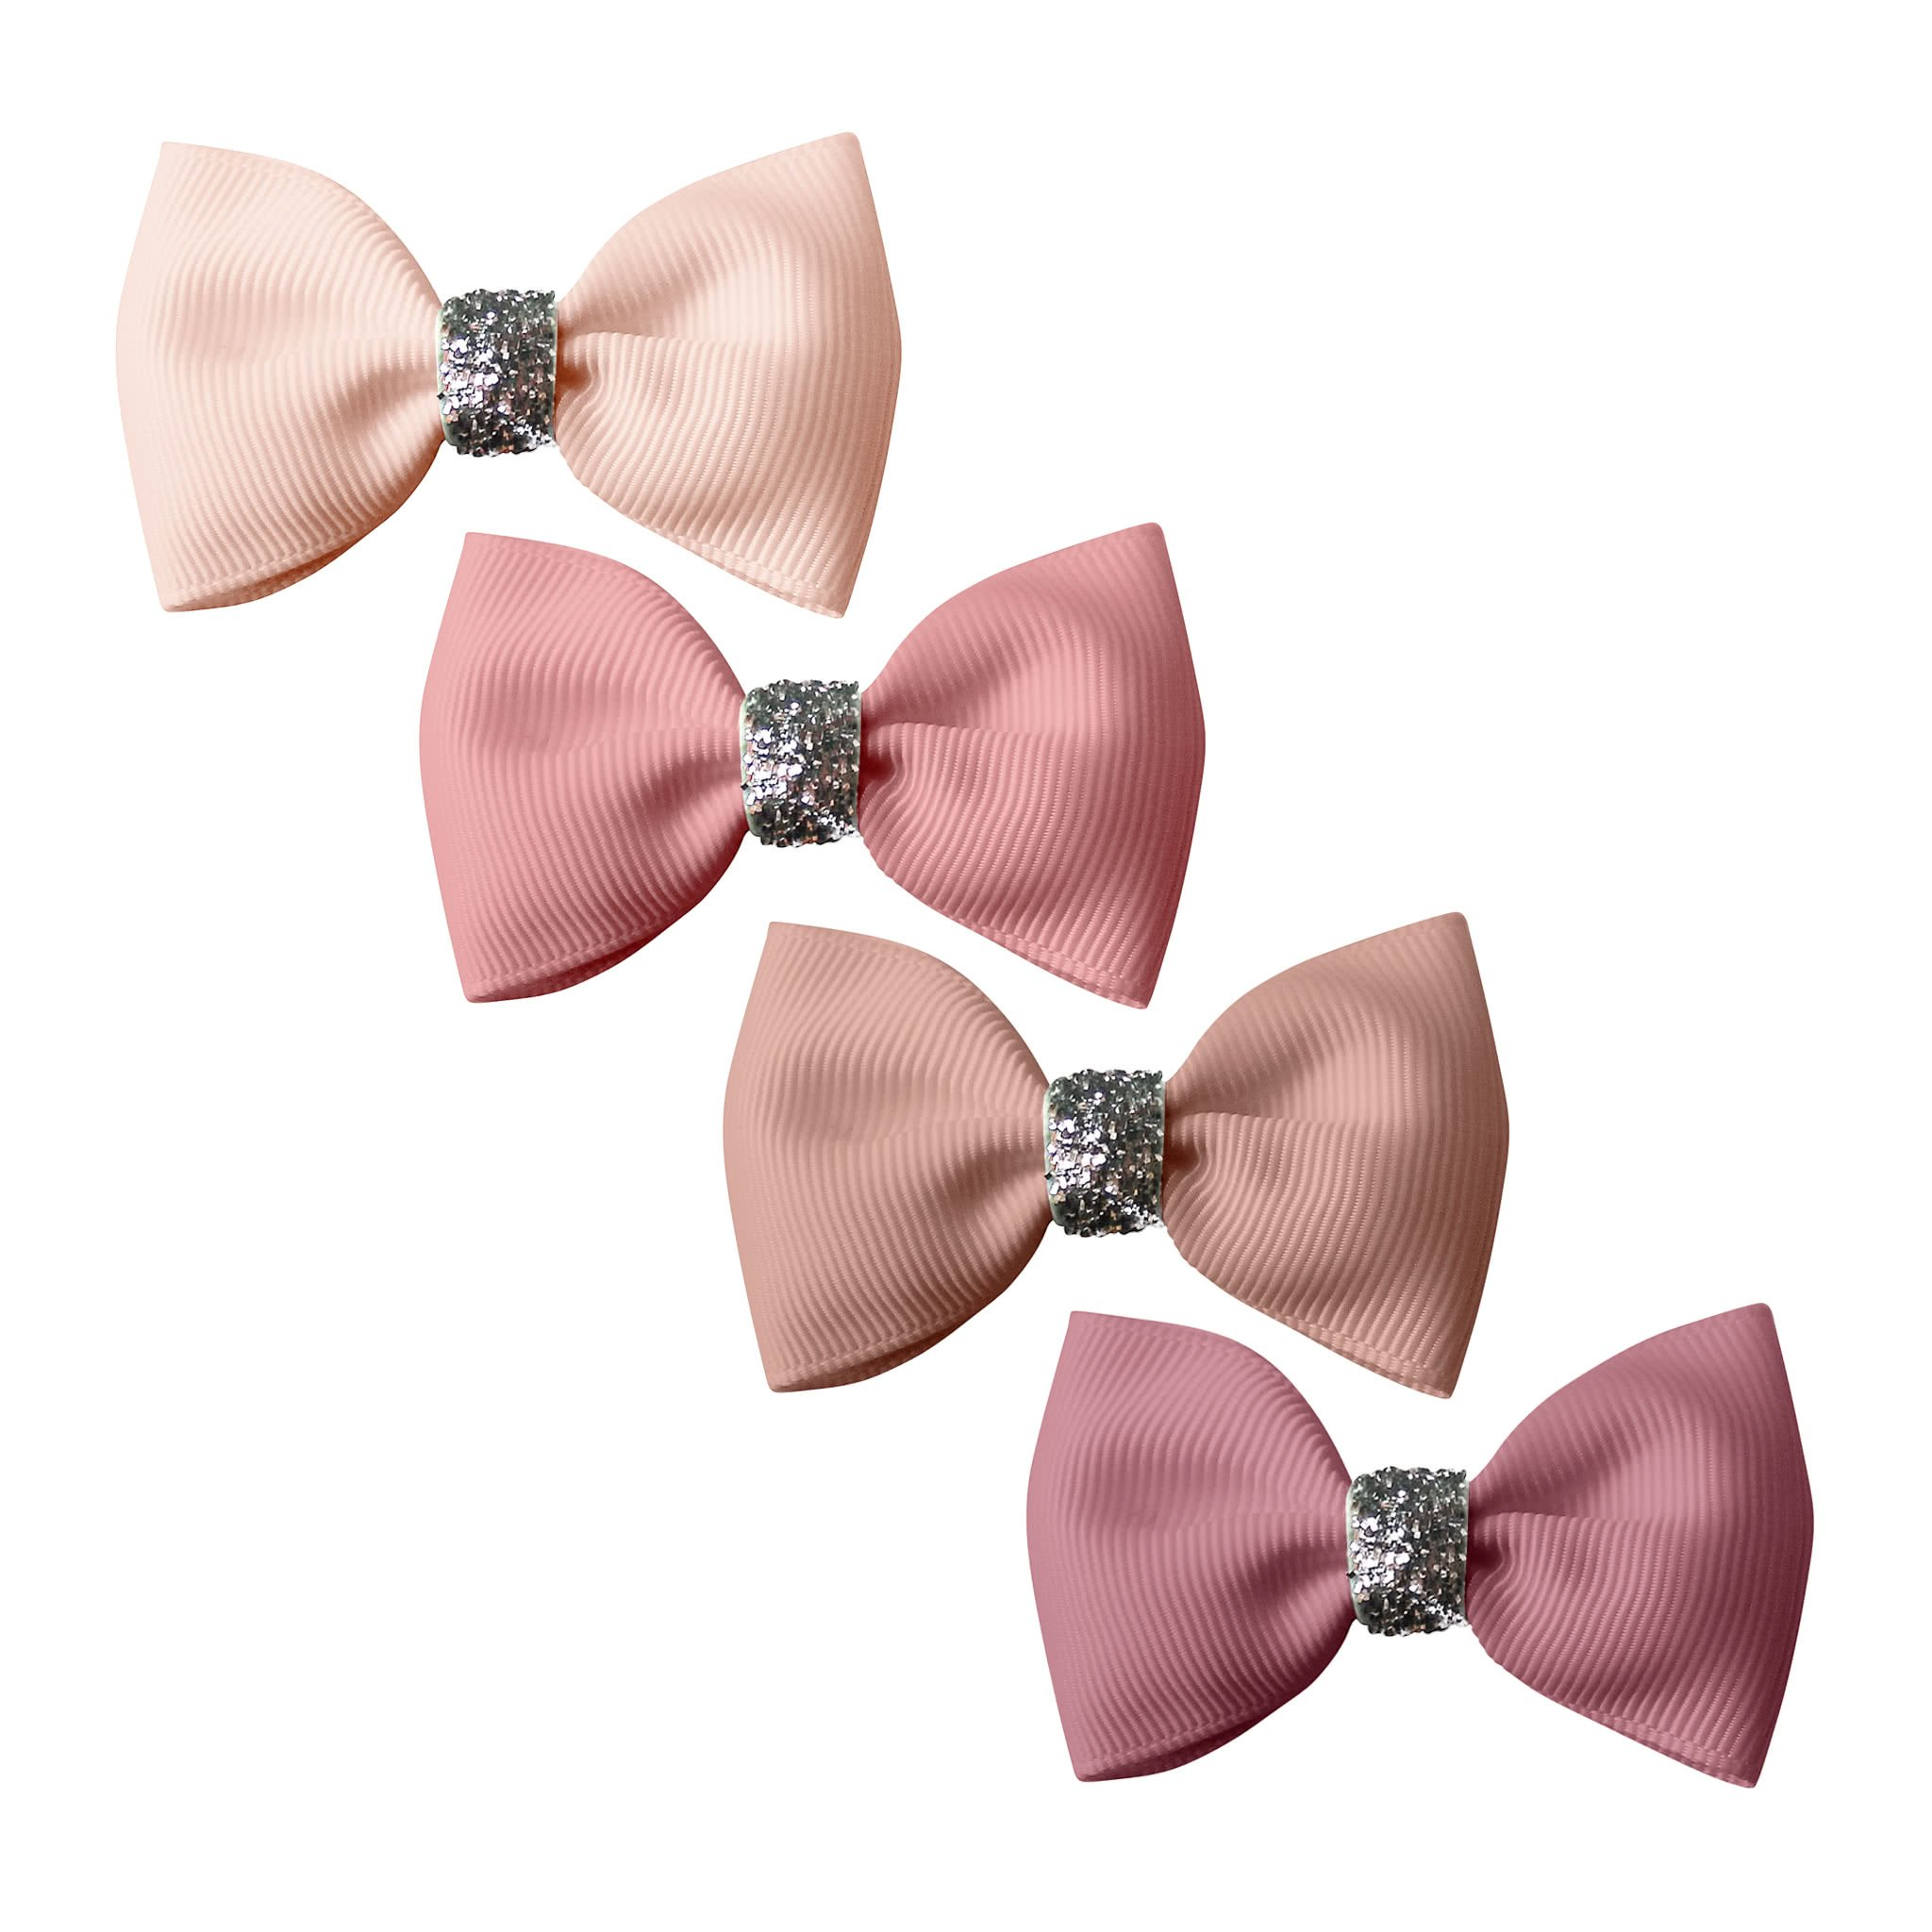 Image of Milledeux® Gift set - 4 Small bowtie bows - alligator clip - Pinks